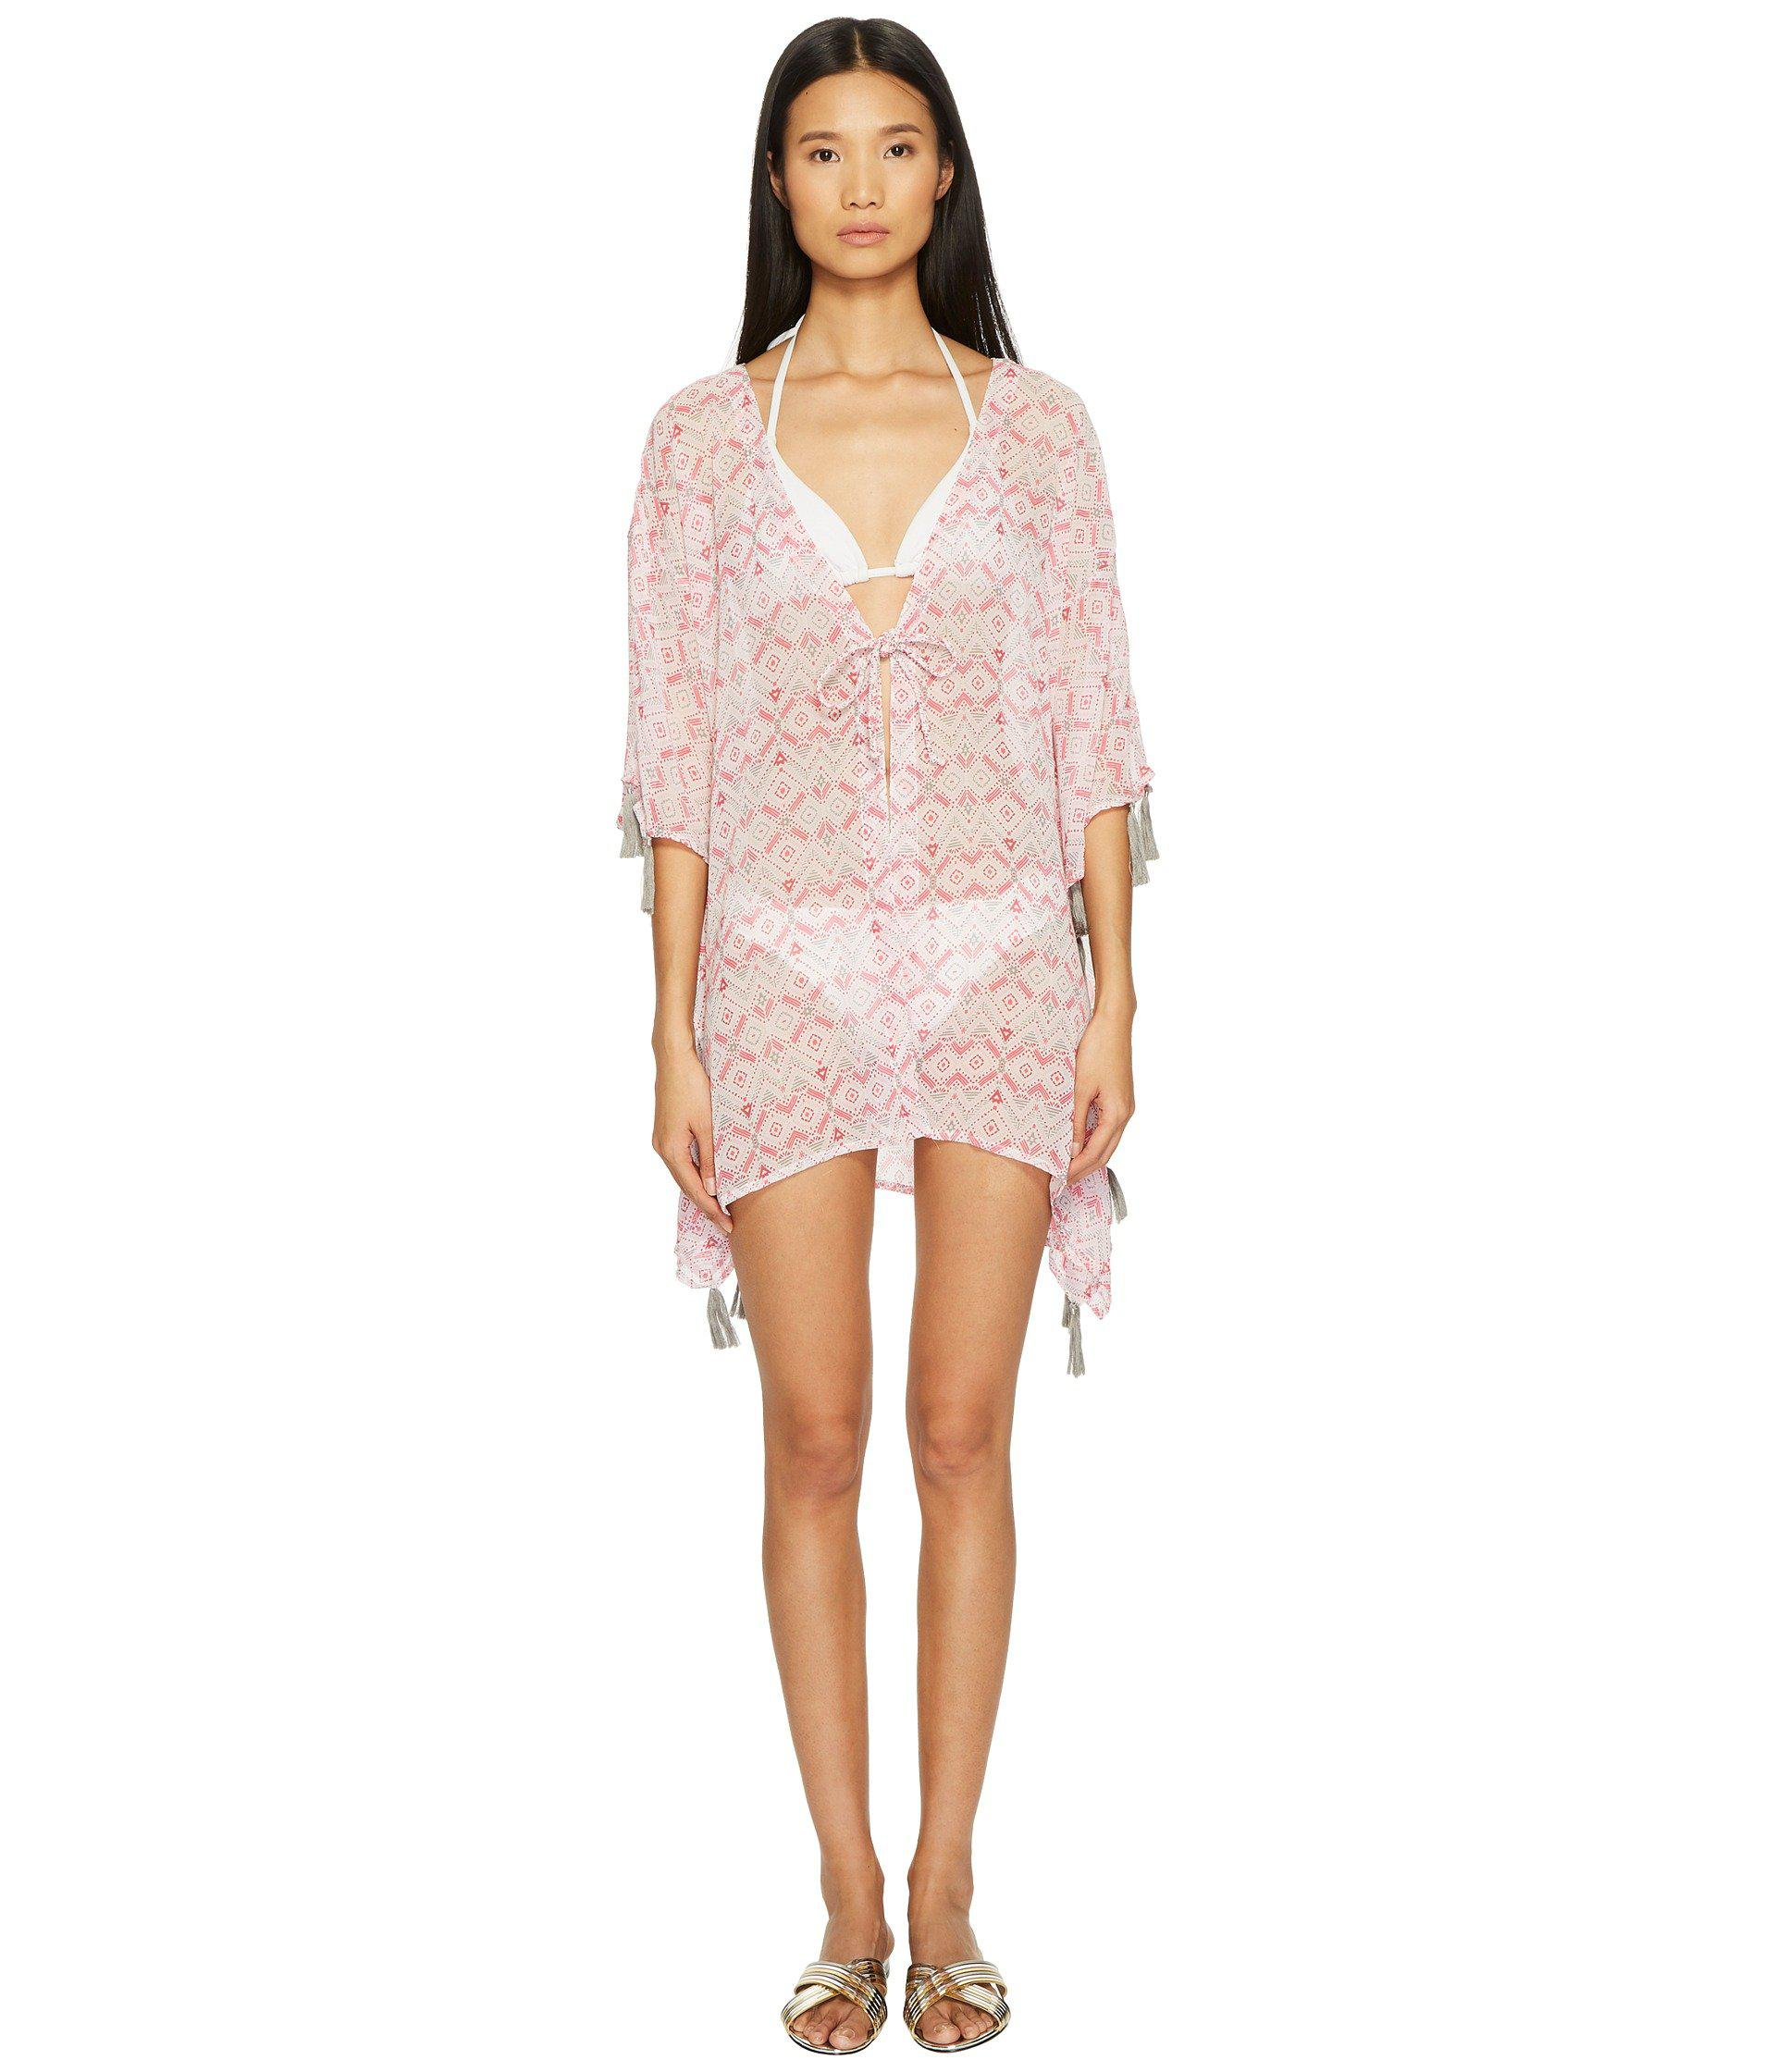 6517cfcecf61e Lyst - Letarte Ombre Beach Shirt Cover-up in Pink - Save 20%